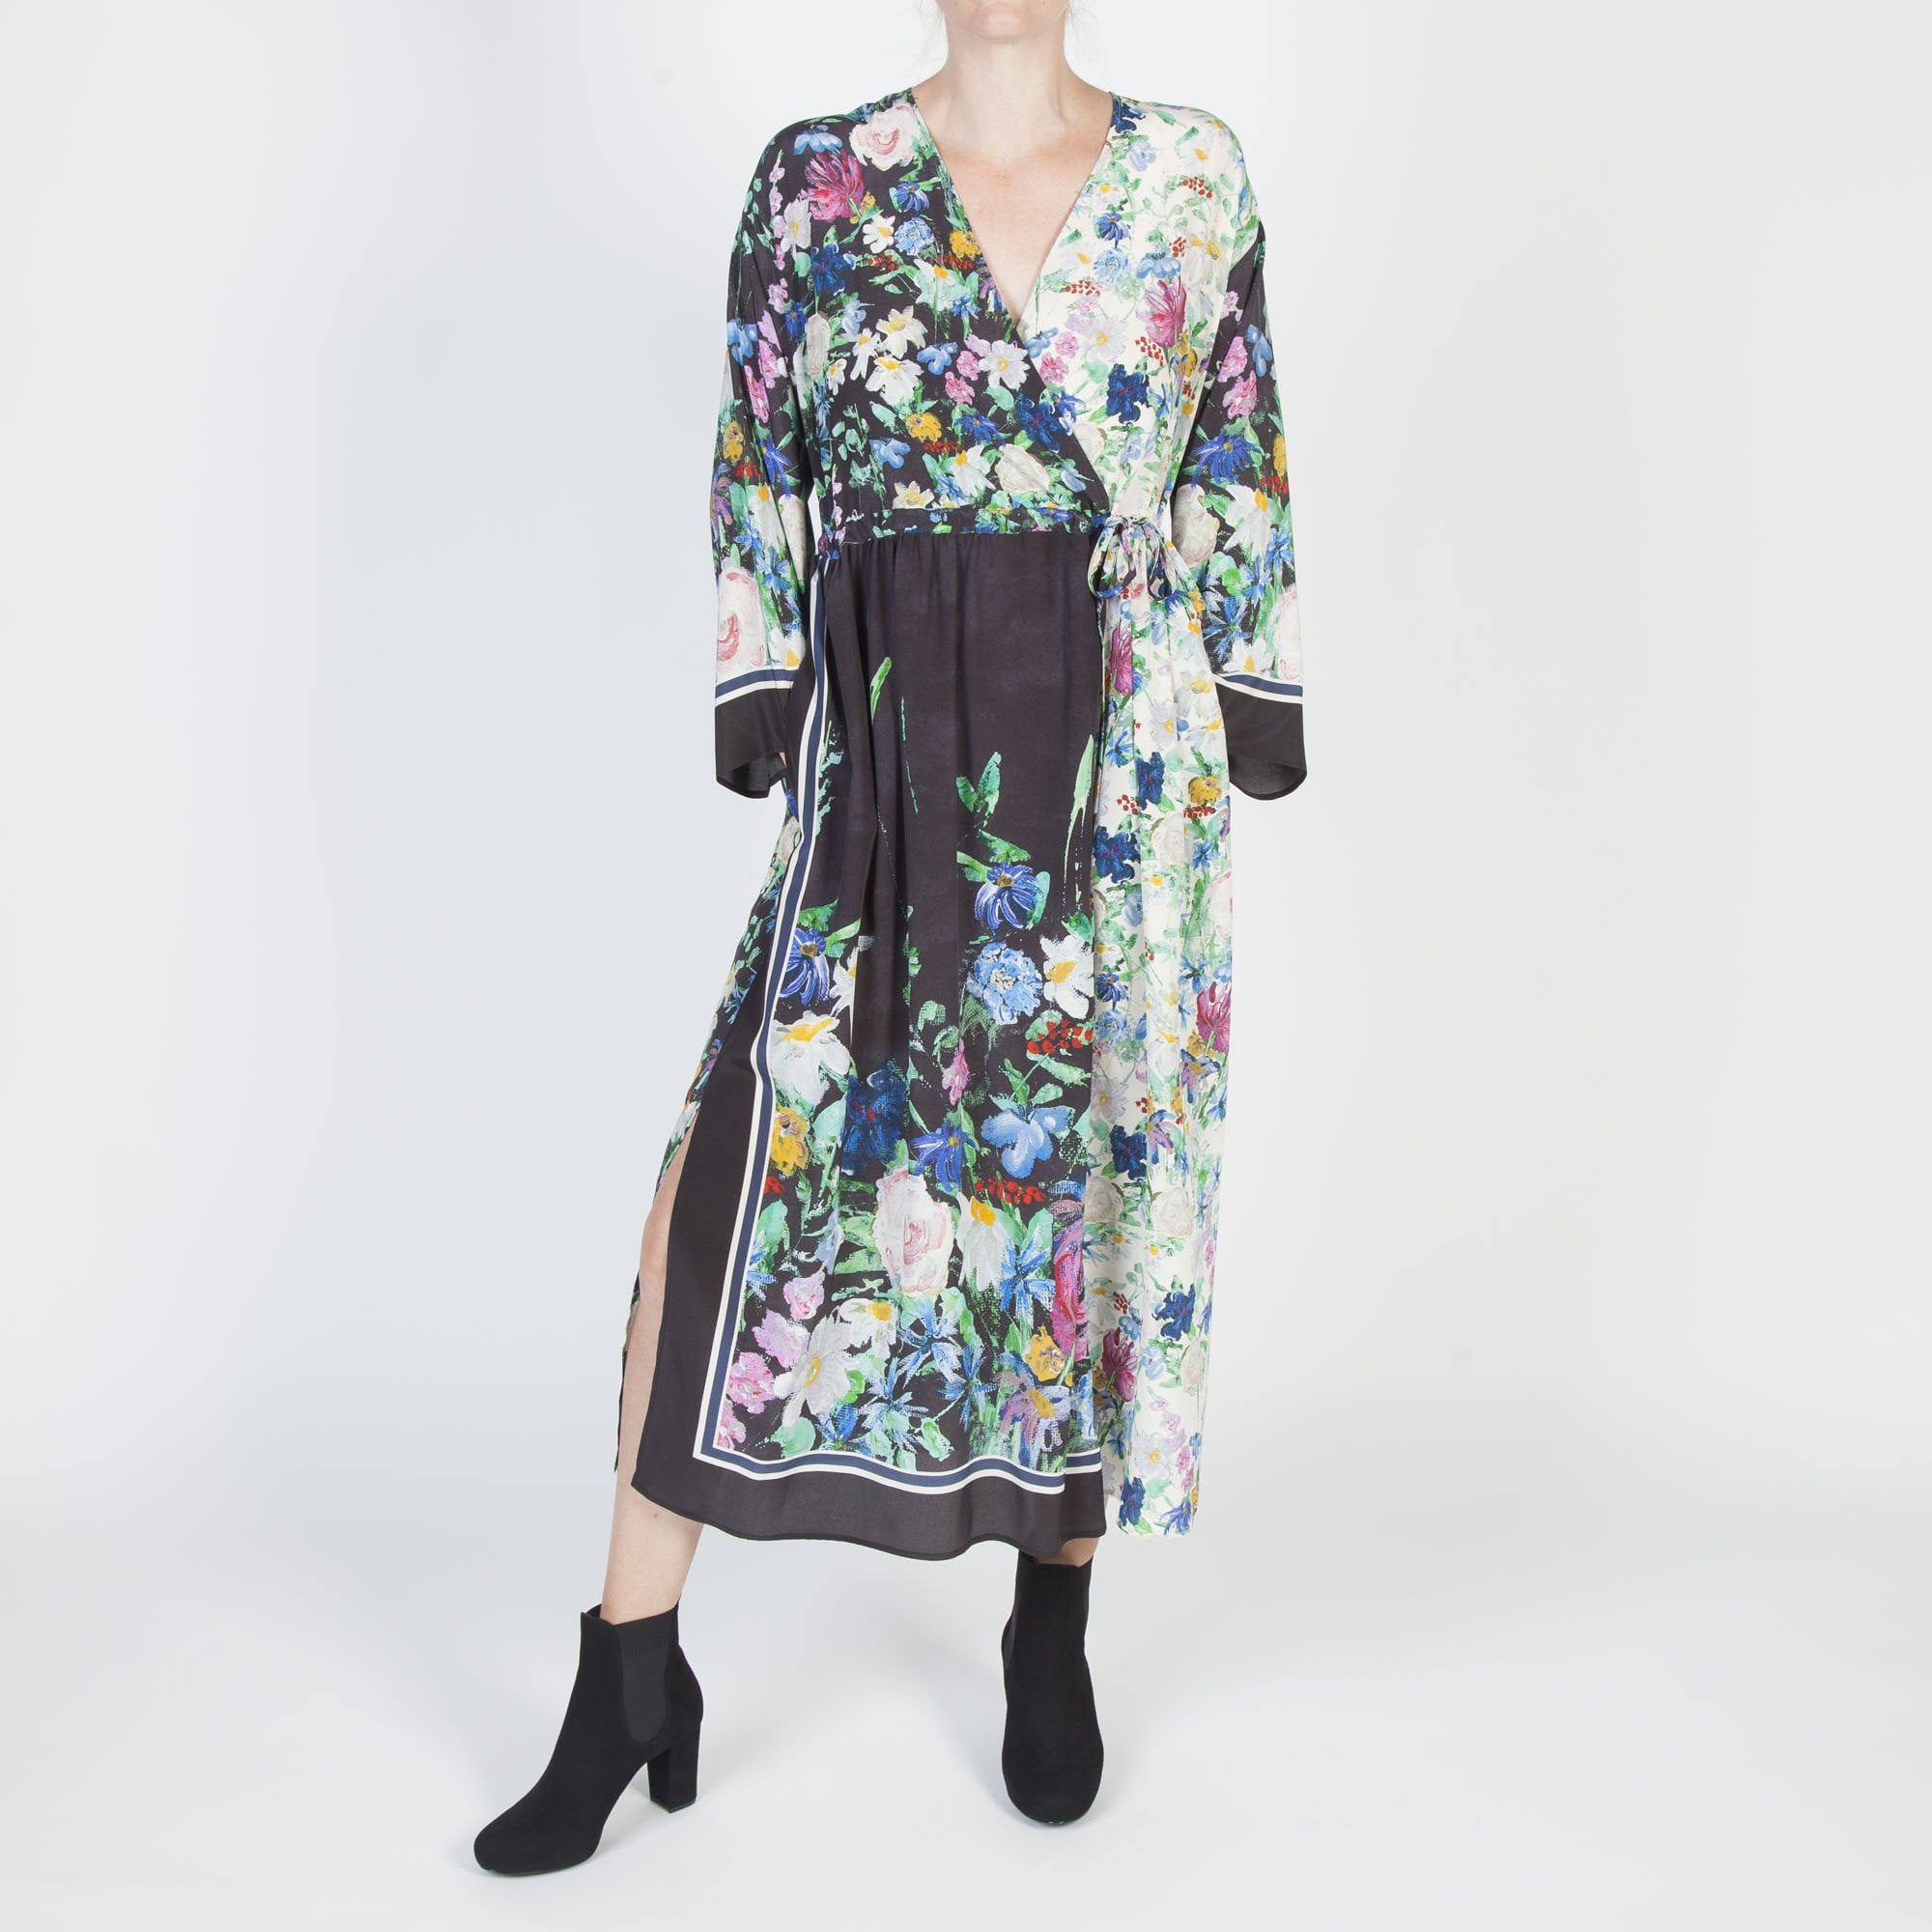 8e8c60b183bd9 S Max Mara Smalto Silk Floral Dress in Black Multi | Collen & Clare